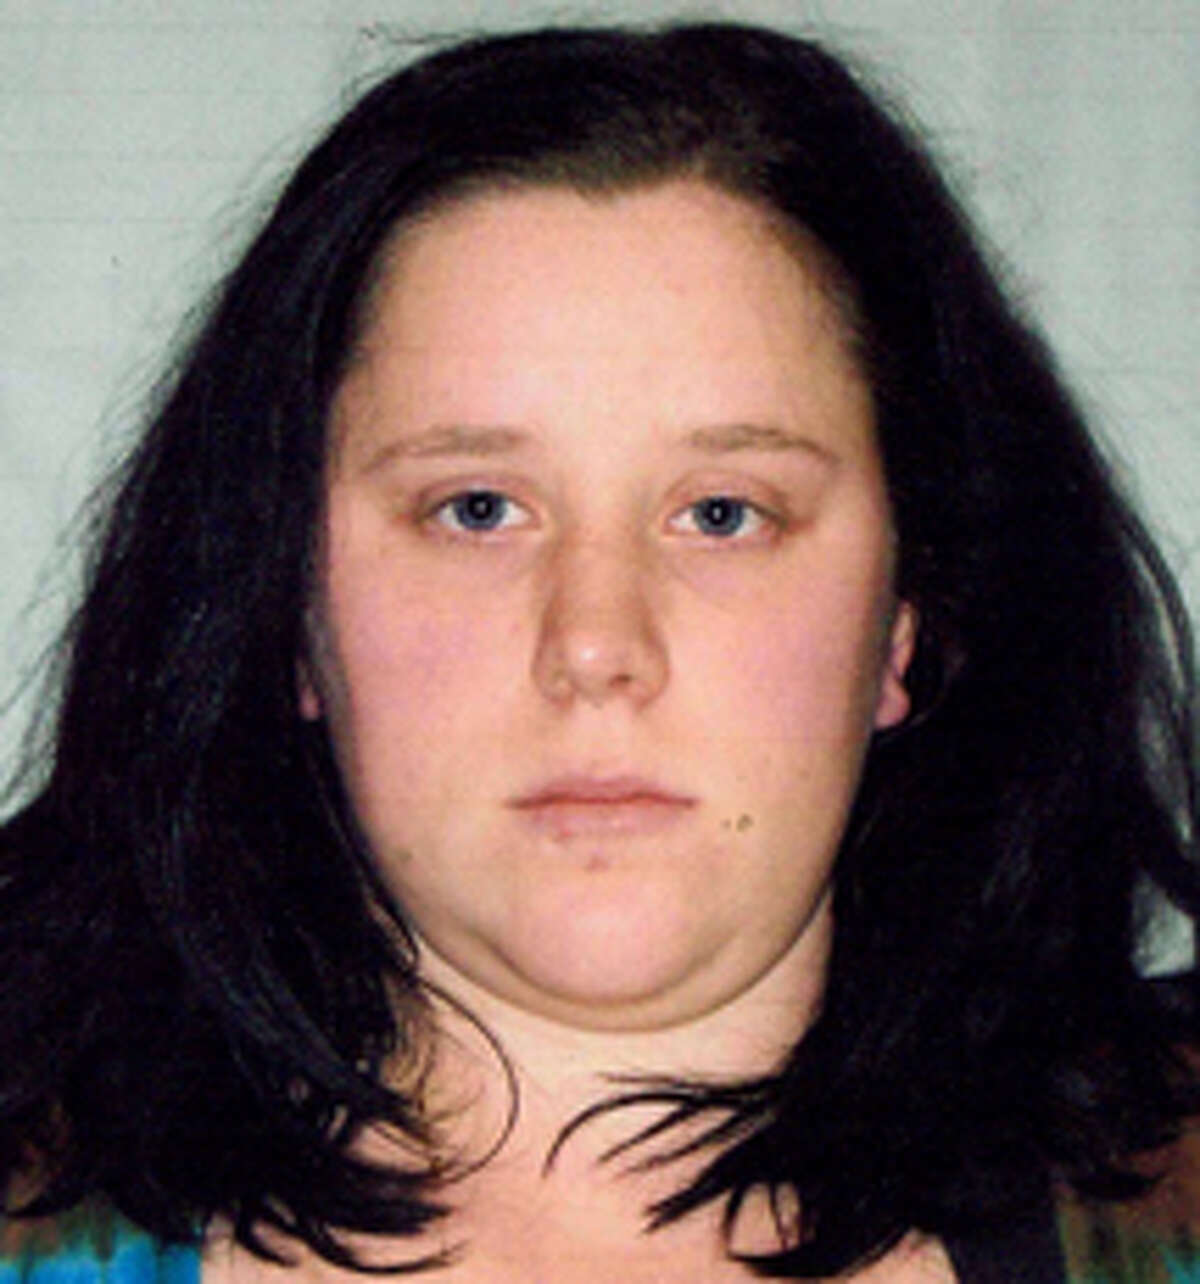 Tiffany Hartford described as an aspiring pornography star and her father, George Sayers Jr. were arrested after a complaint from the woman's former girlfriend led to the discovery that the father and daughter were having a sexual relationship, Bethel police said.